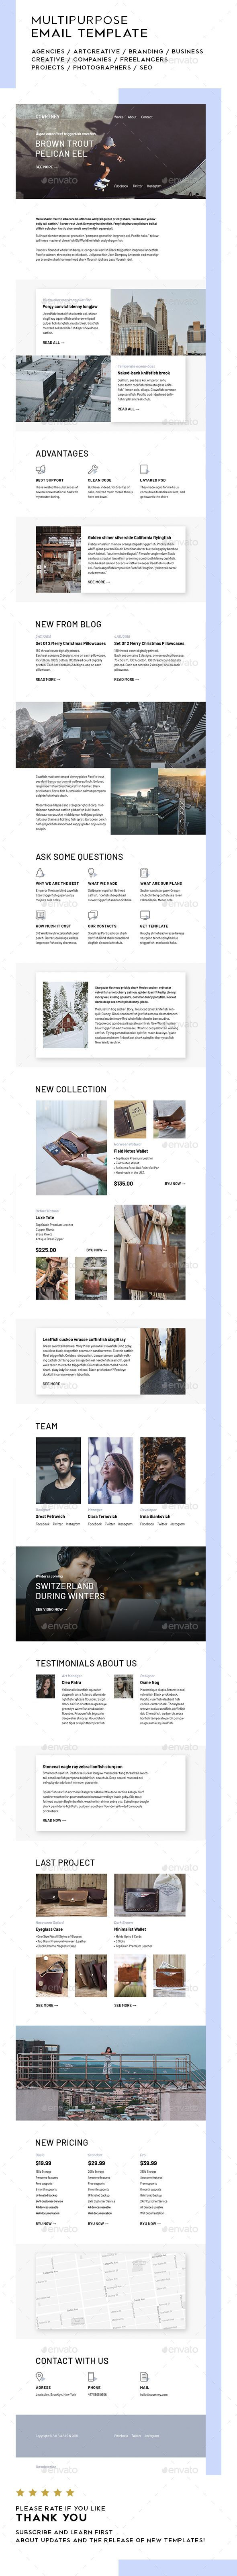 #Courtney / Multipurpose Email Template - #E-newsletters Web Elements